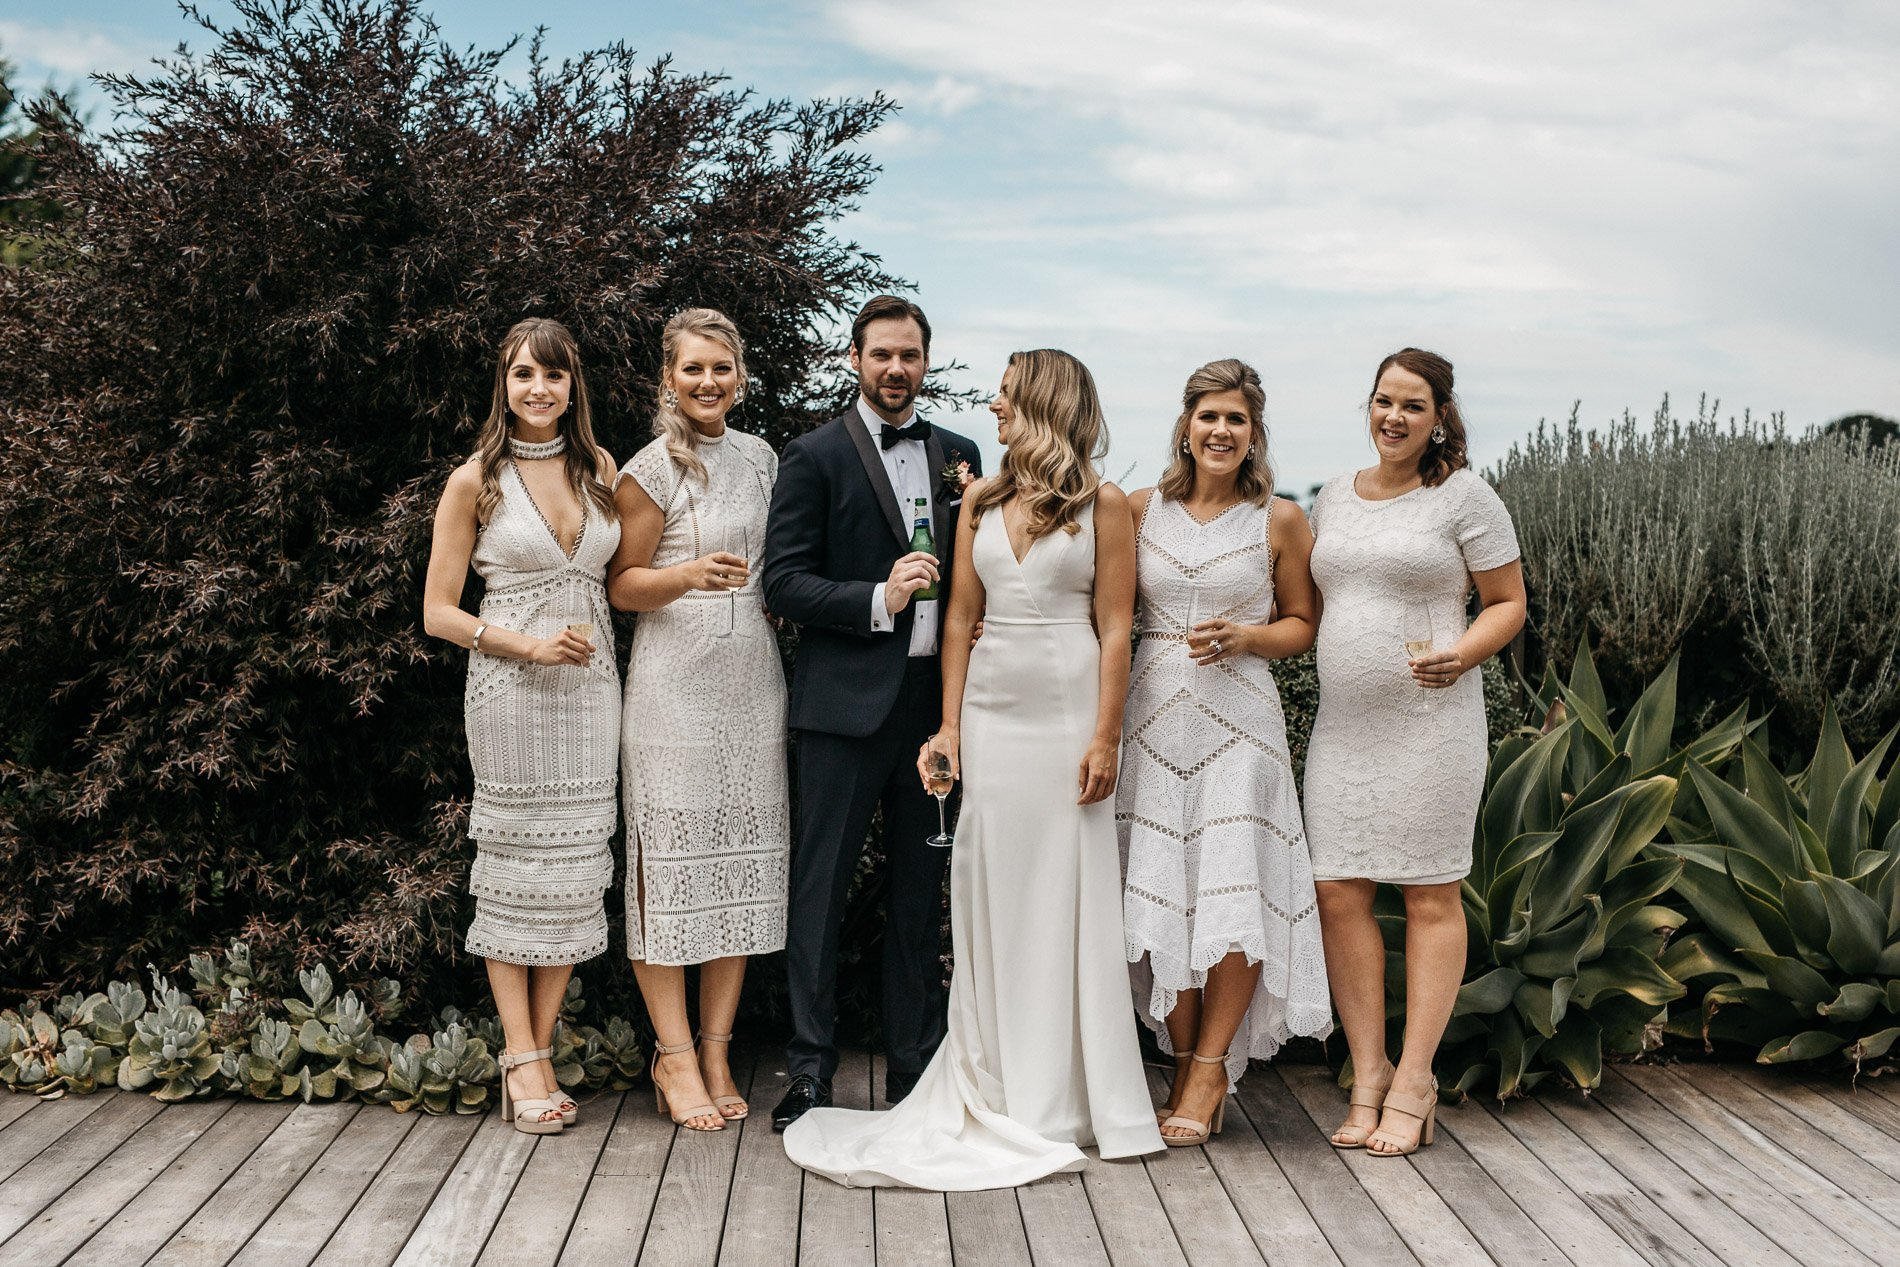 Fern and stone photography epicurean house bridal party